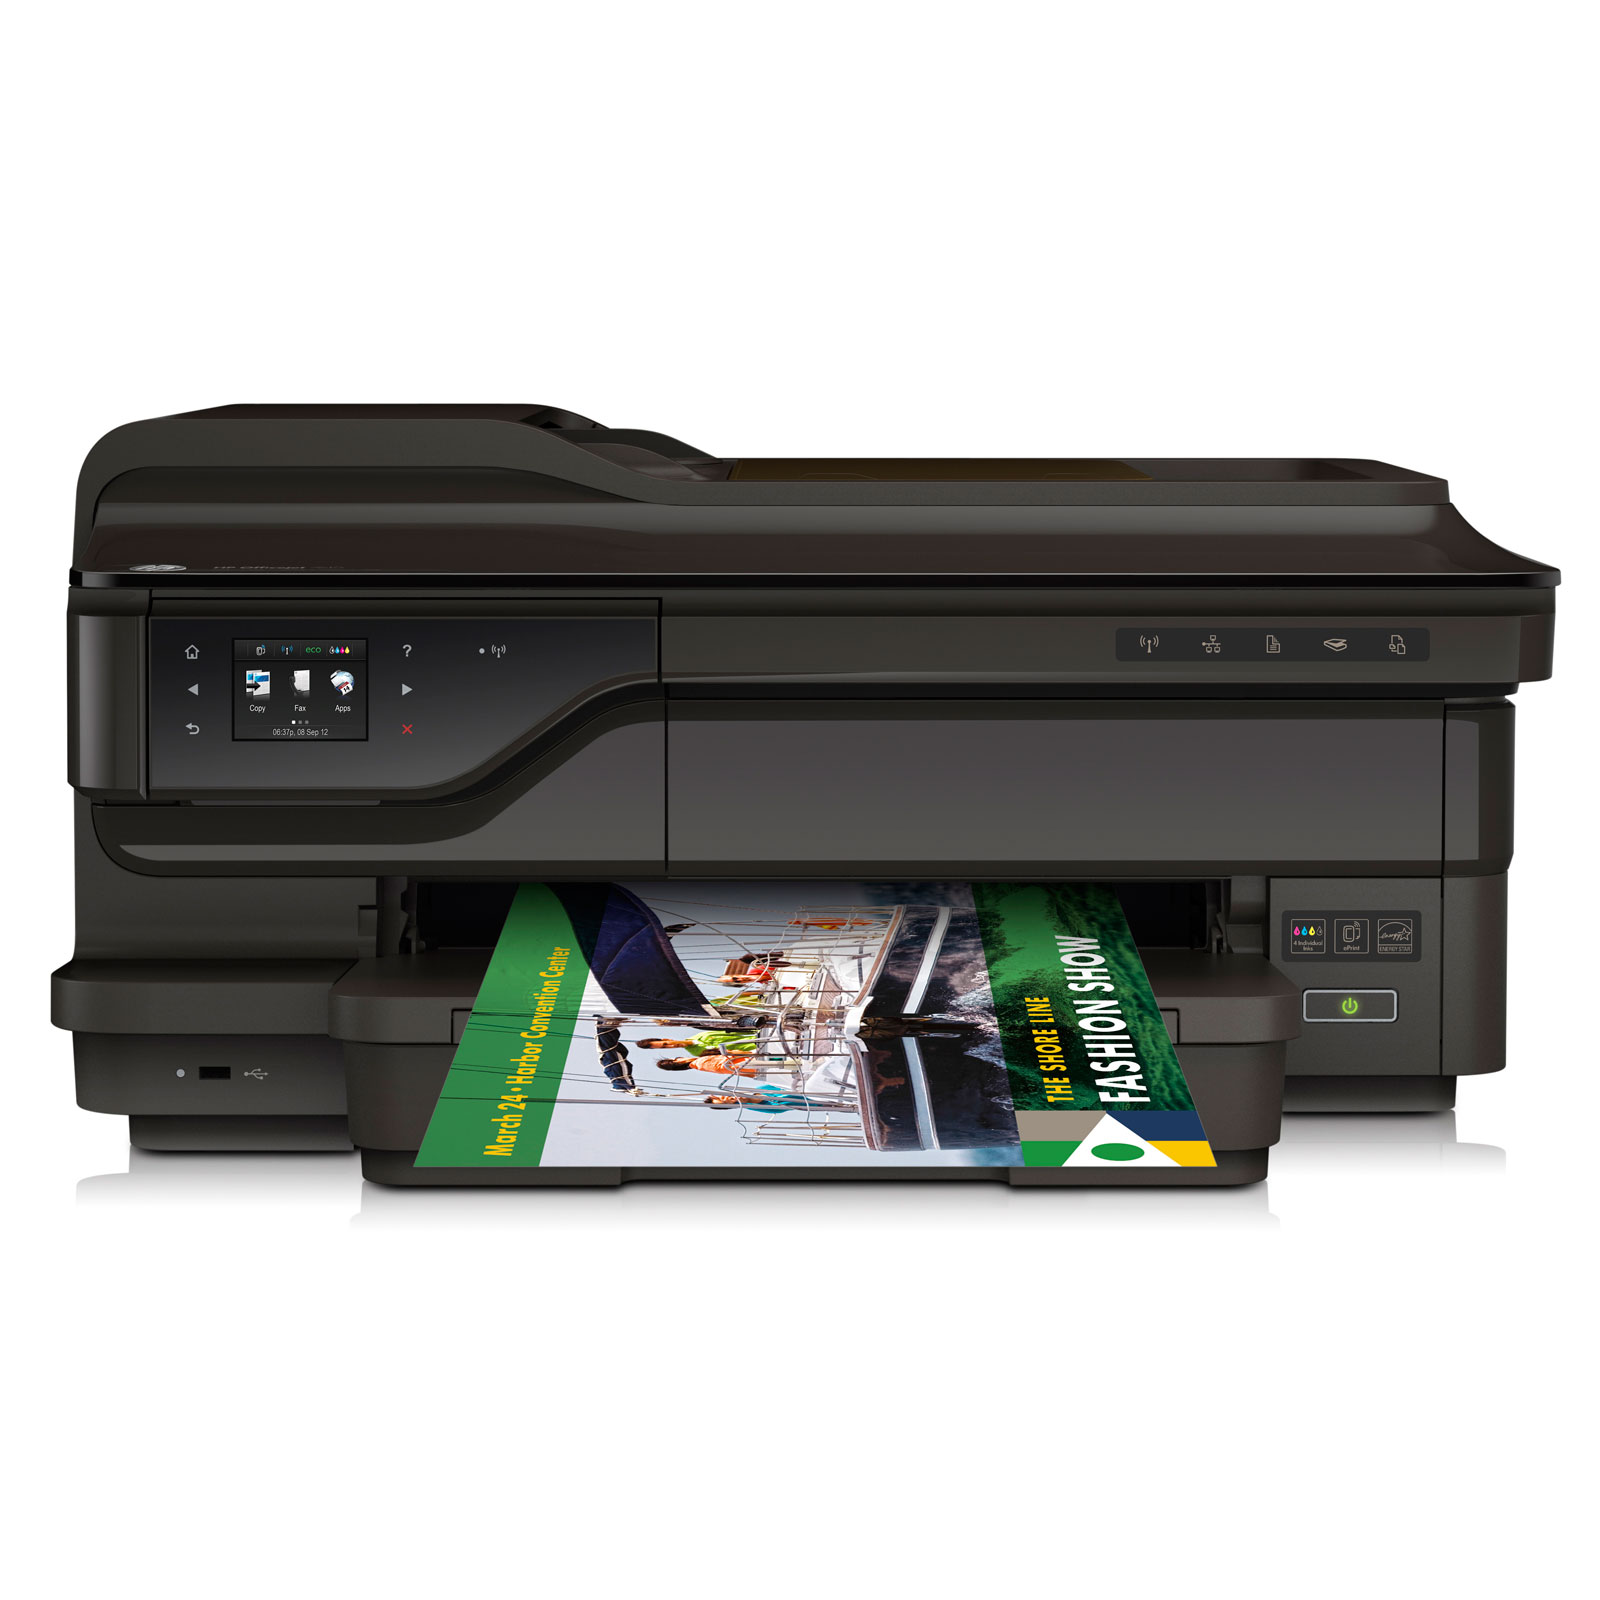 hp officejet 7612 wf imprimante multifonction hp sur ldlc. Black Bedroom Furniture Sets. Home Design Ideas